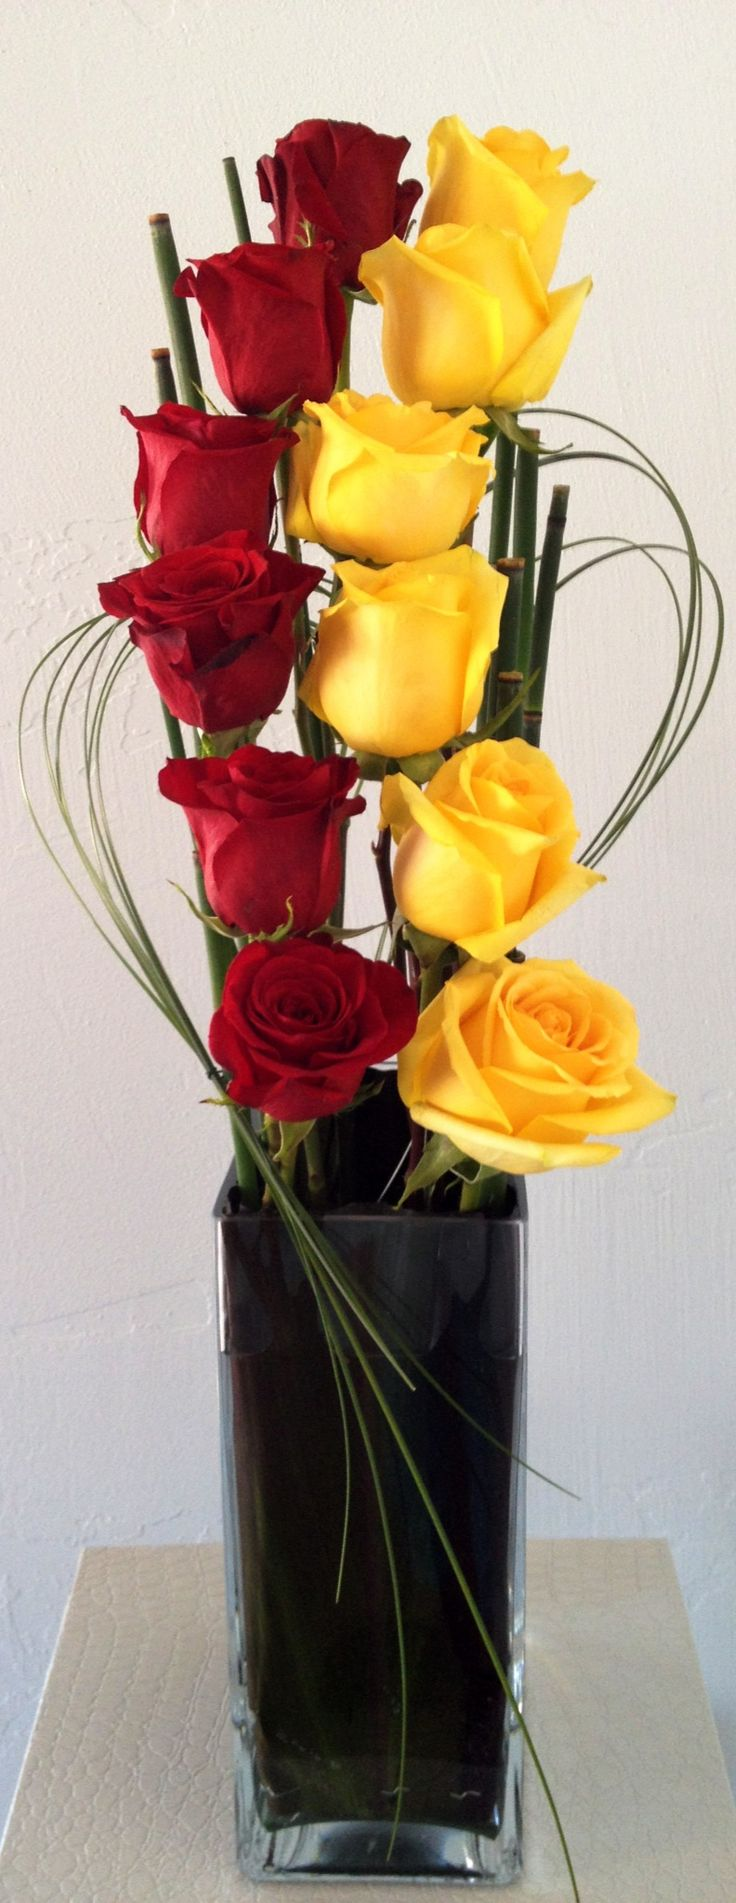 Not your average dozen roses.                                                                                                                                                                                 More